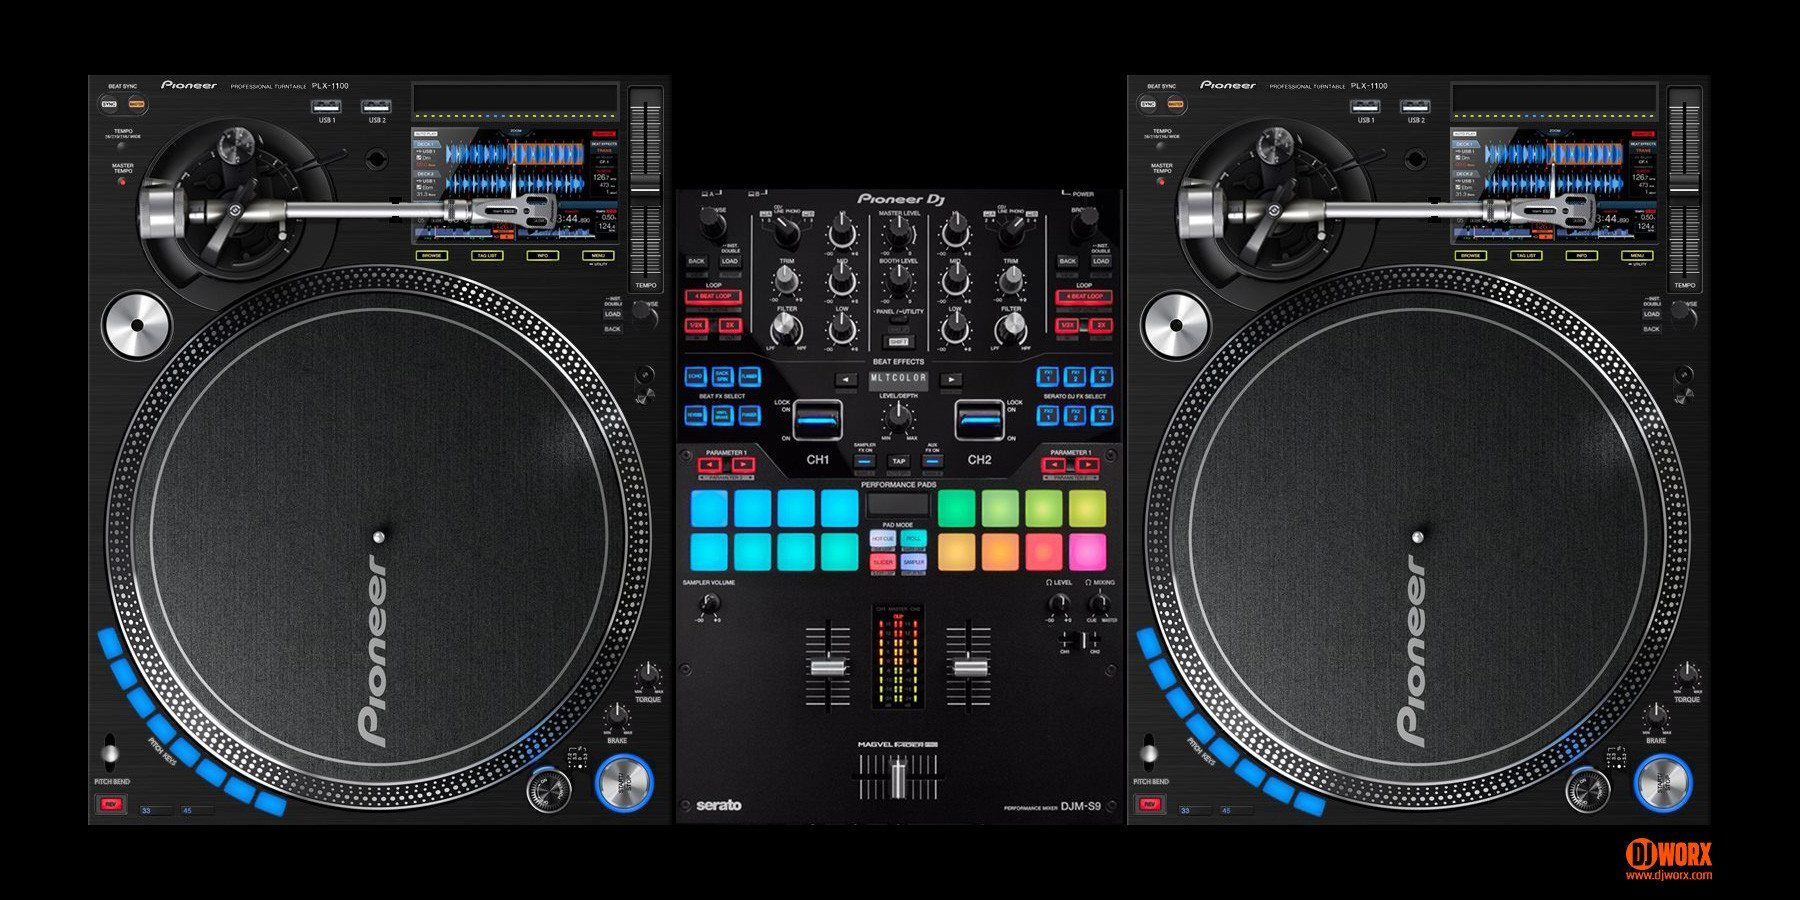 Could The Next Pioneer Dj Plx 1100 Turntable Look Like